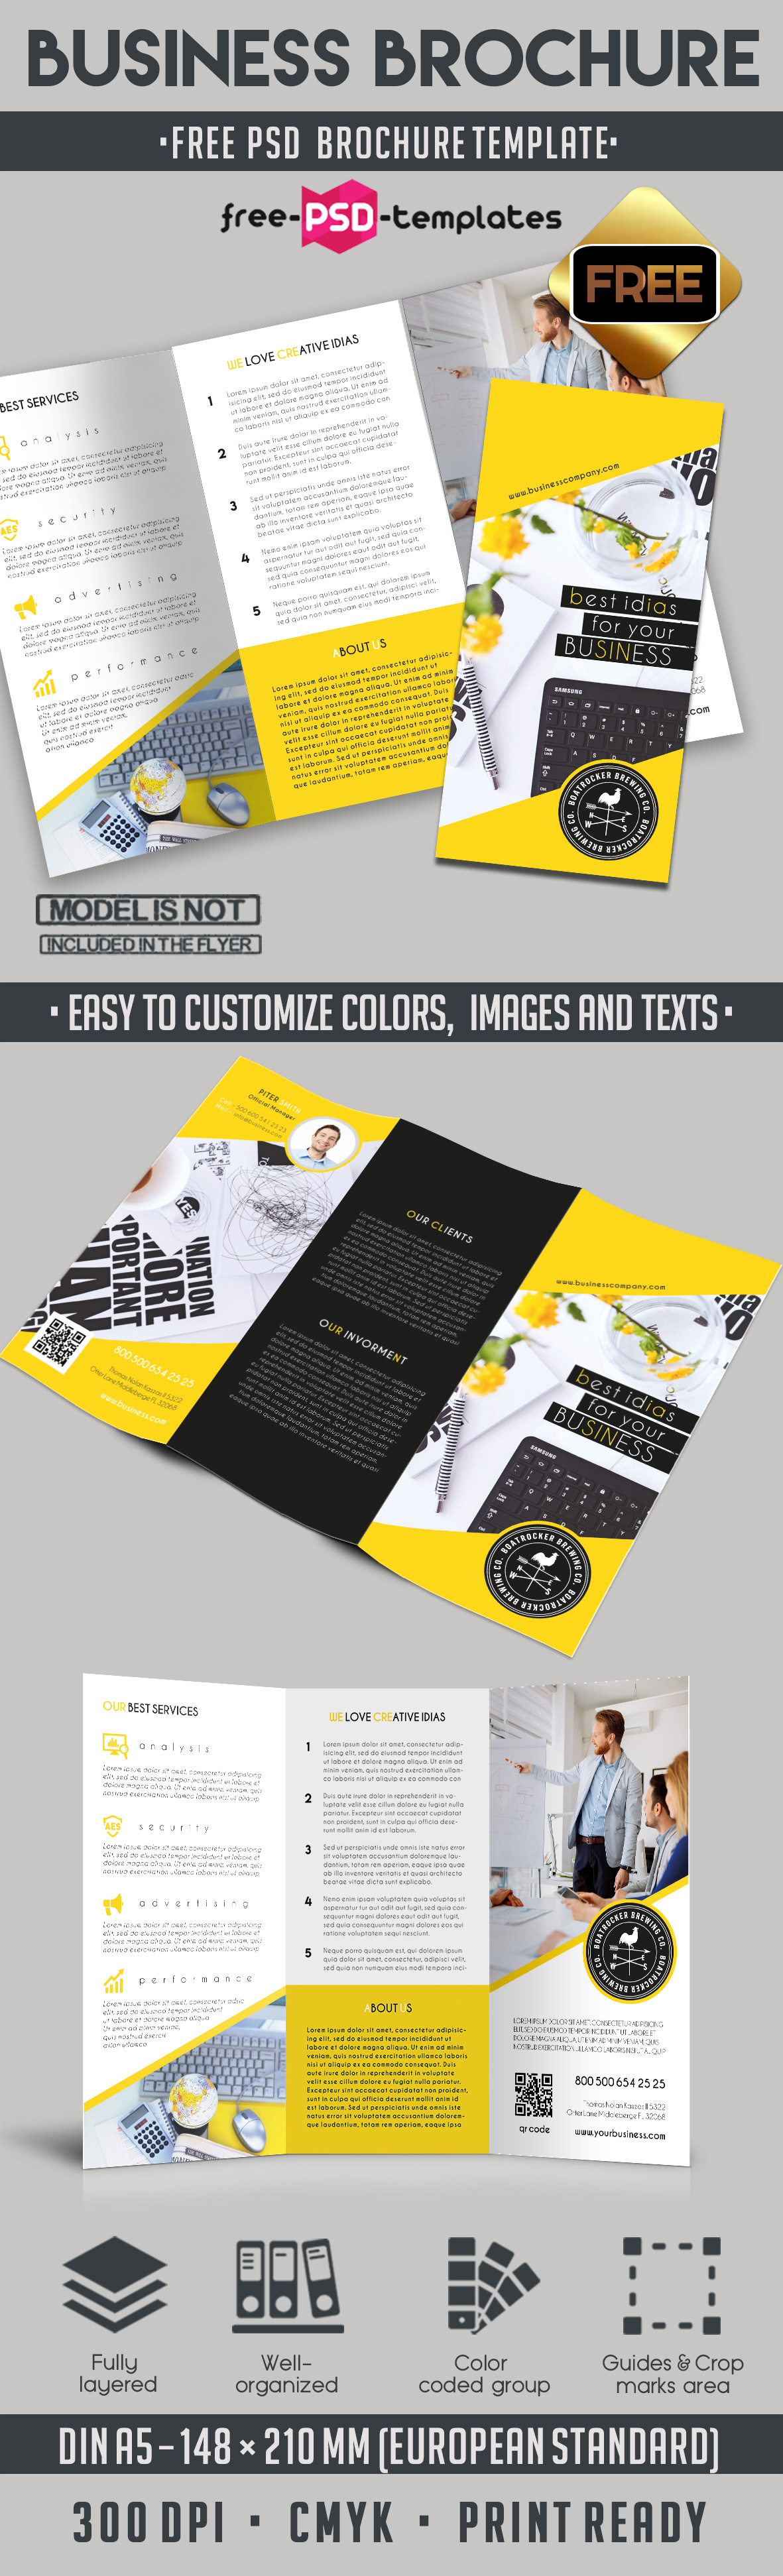 template brochure psd - free business tri fold brochure psd template free psd